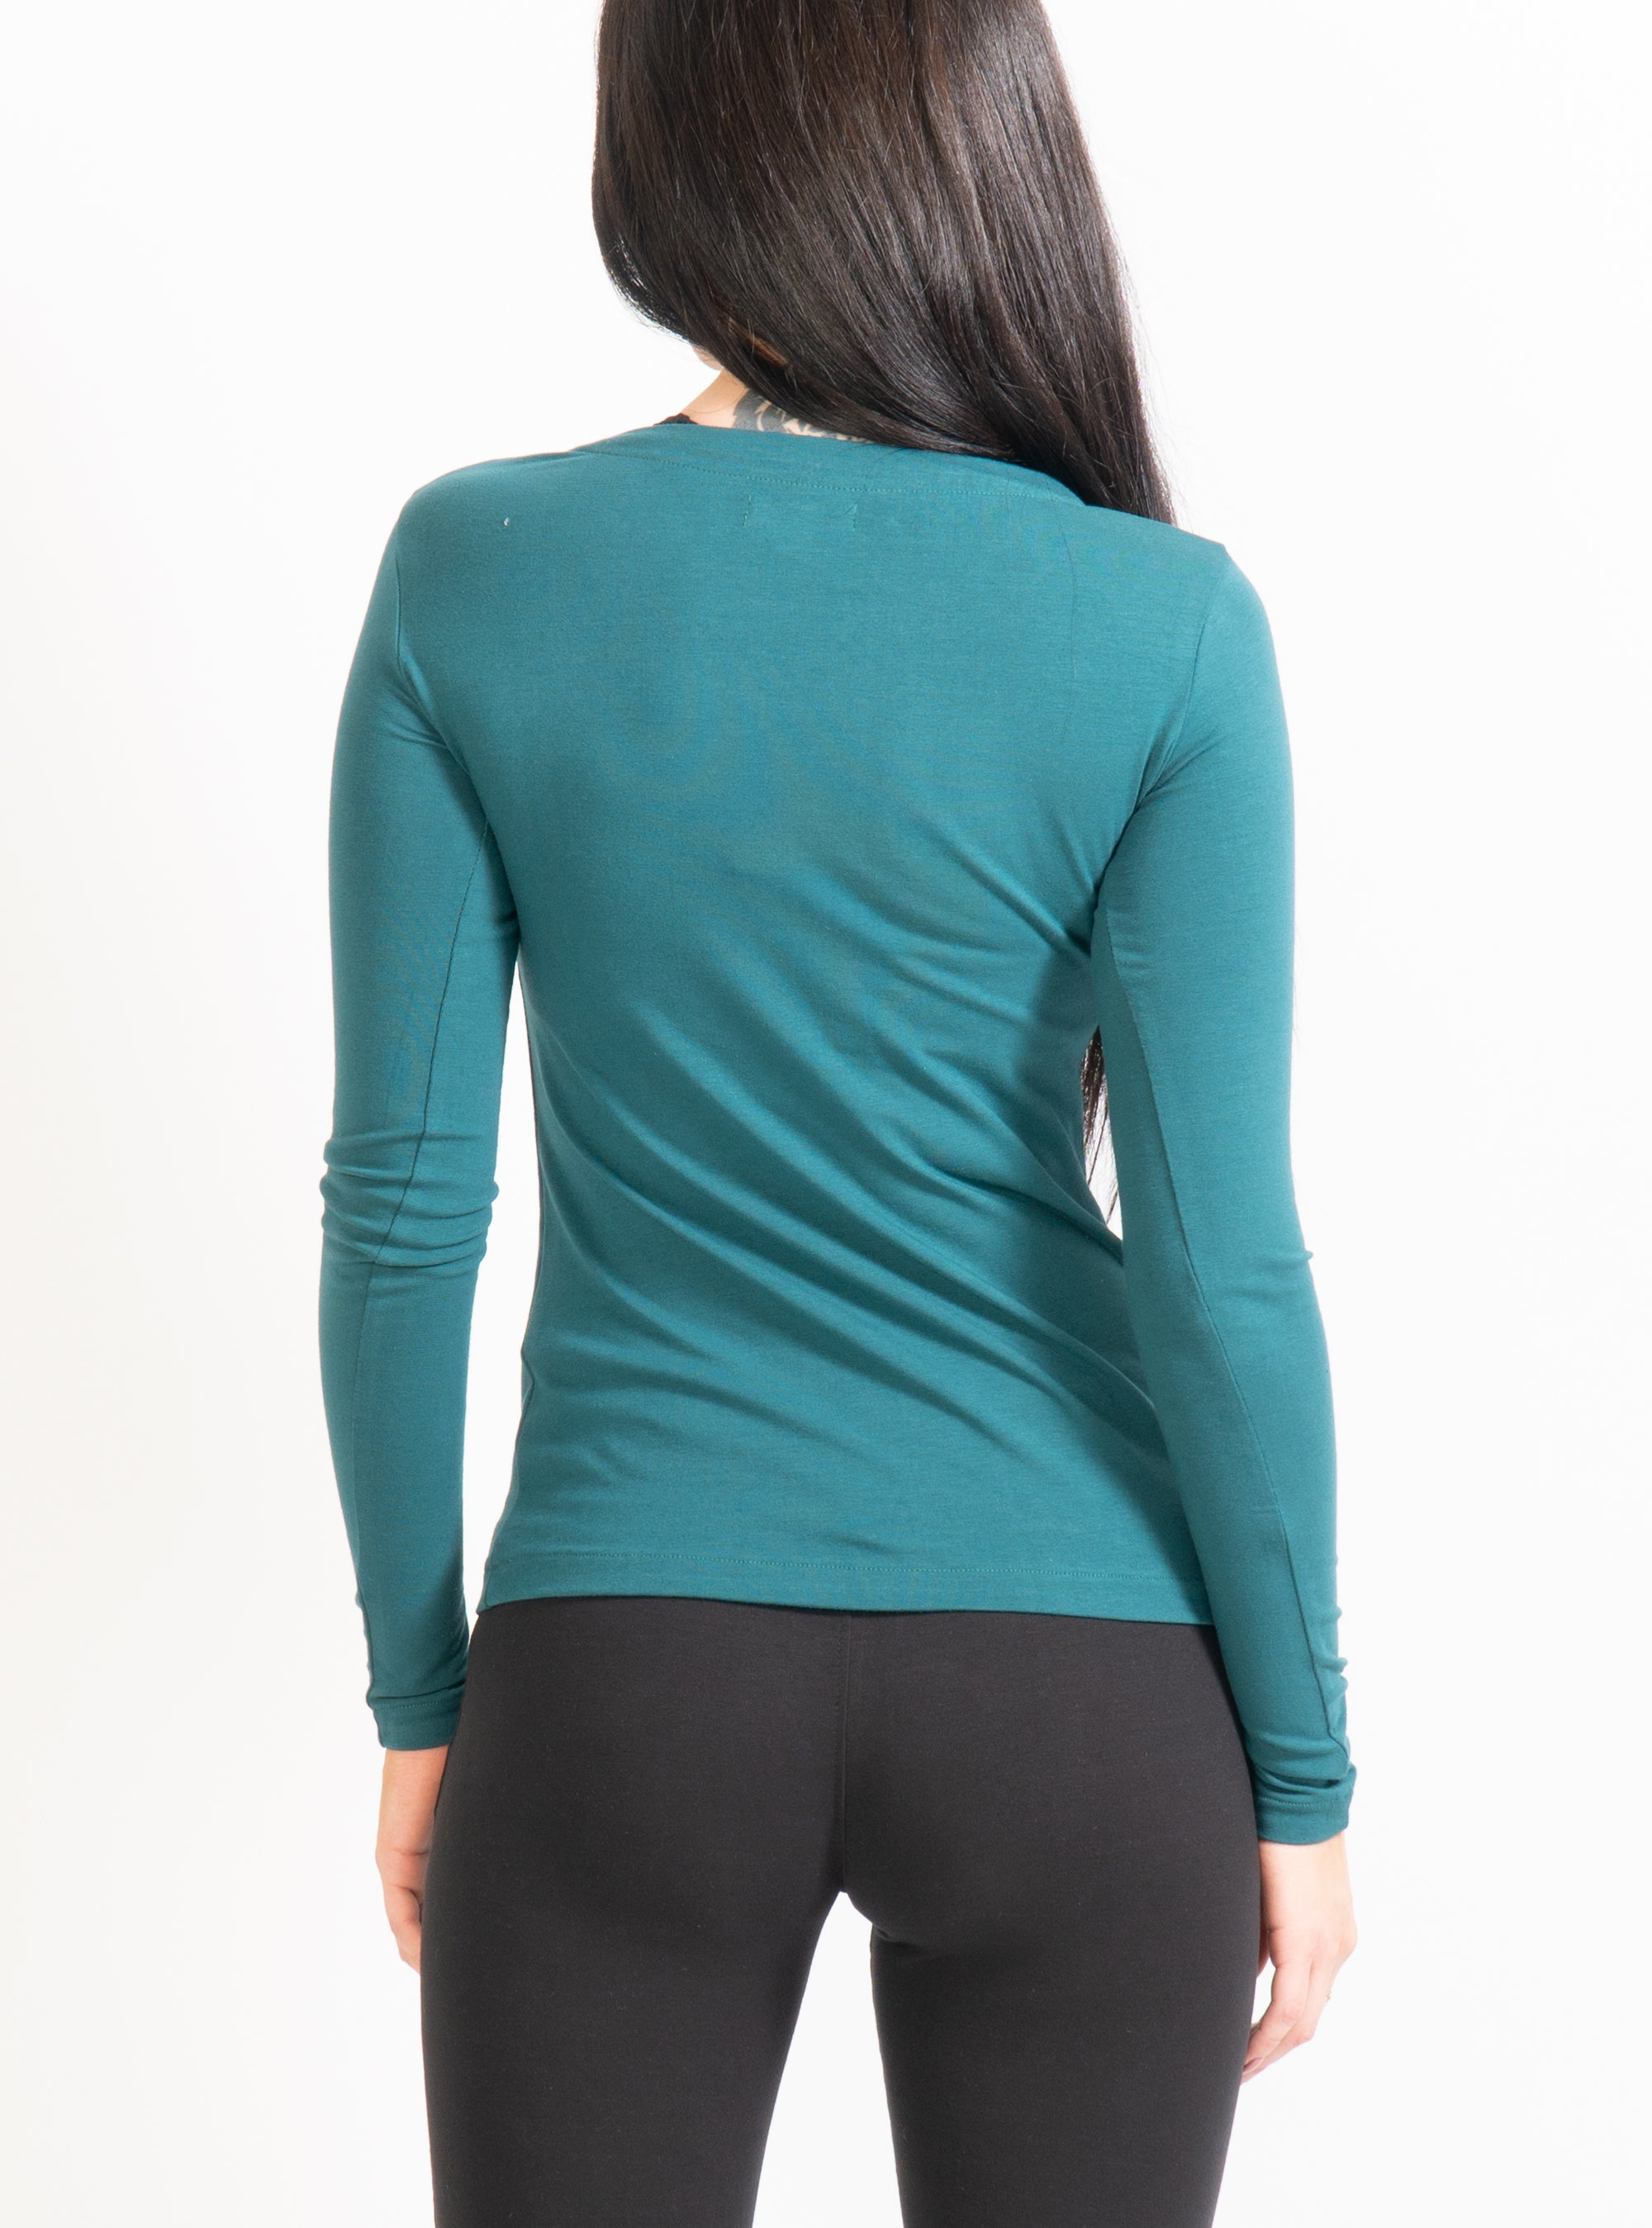 Teal Febe Long Sleeve T